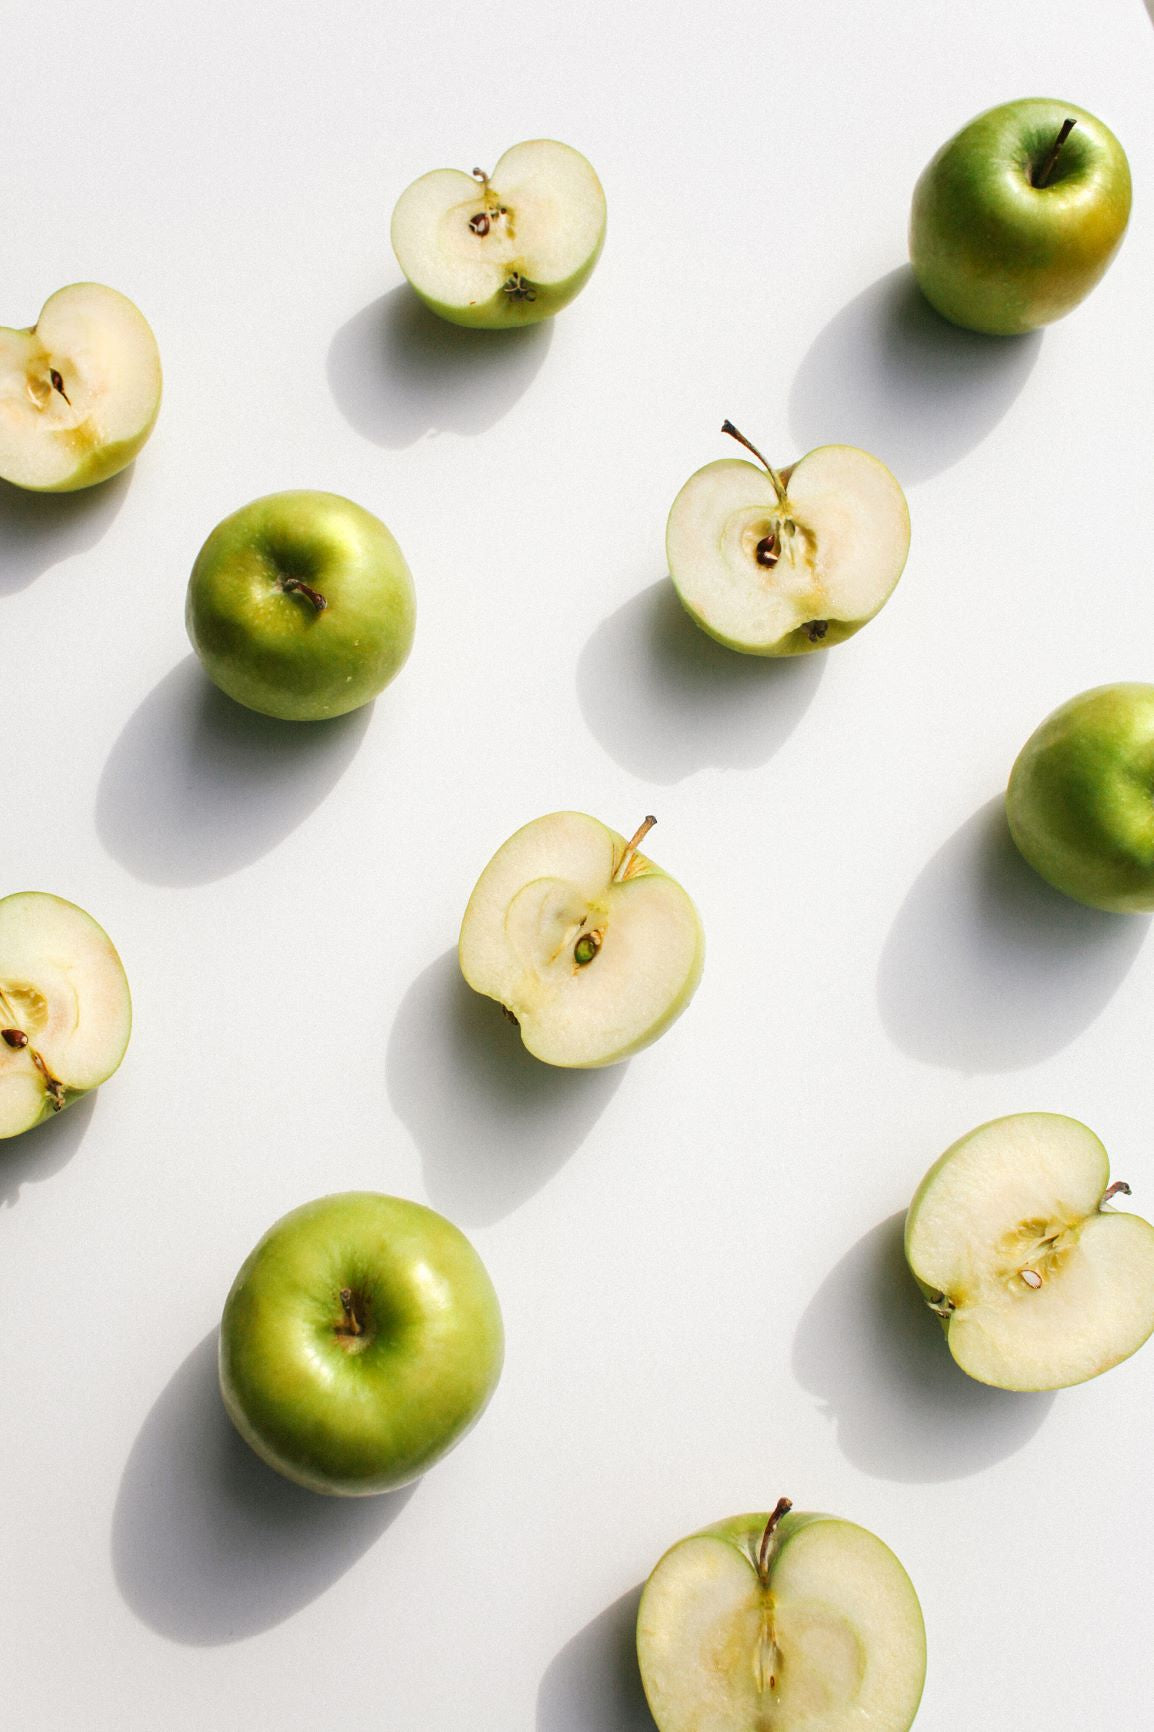 5 Reasons Why You Should Eat More Apples